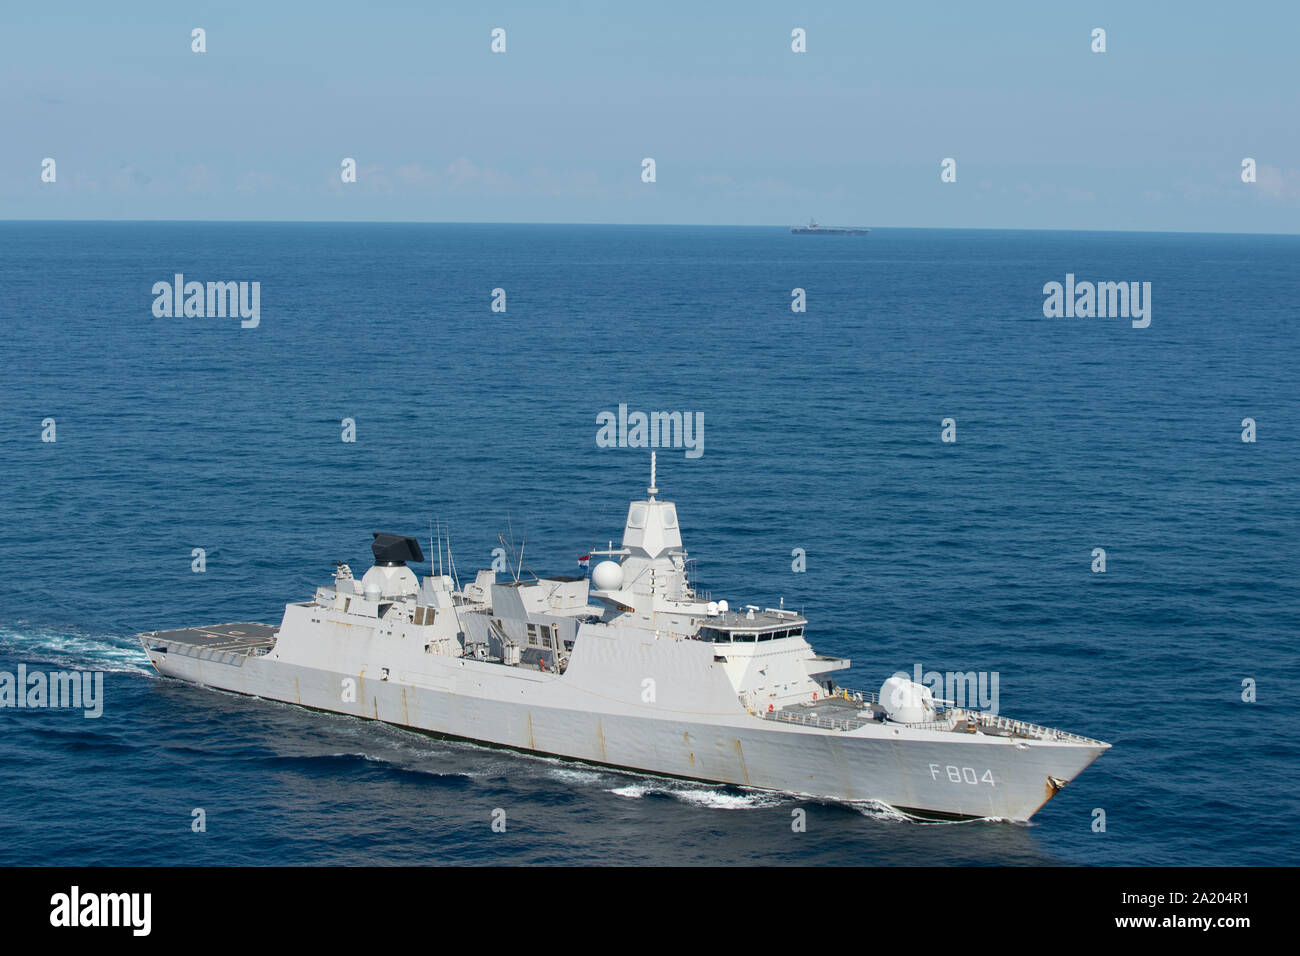 190928-N-QD512-1282  ATLANTIC OCEAN (Sept. 28, 2019) The Royal Netherlands Navy De Seven Provinciën-class frigate HNLMS De Ruyter (F804) transits the Atlantic Ocean during a photo exercise with the aircraft carrier USS Dwight D. Eisenhower to conclude Tailored Ship's Training Availability (TSTA) and Final Evaluation Problem (FEP) as part of the basic phase of the Optimized Fleet Response Plan. (U.S. Navy photo by Mass Communication Specialist 3rd Class Kaleb J. Sarten) Stock Photo